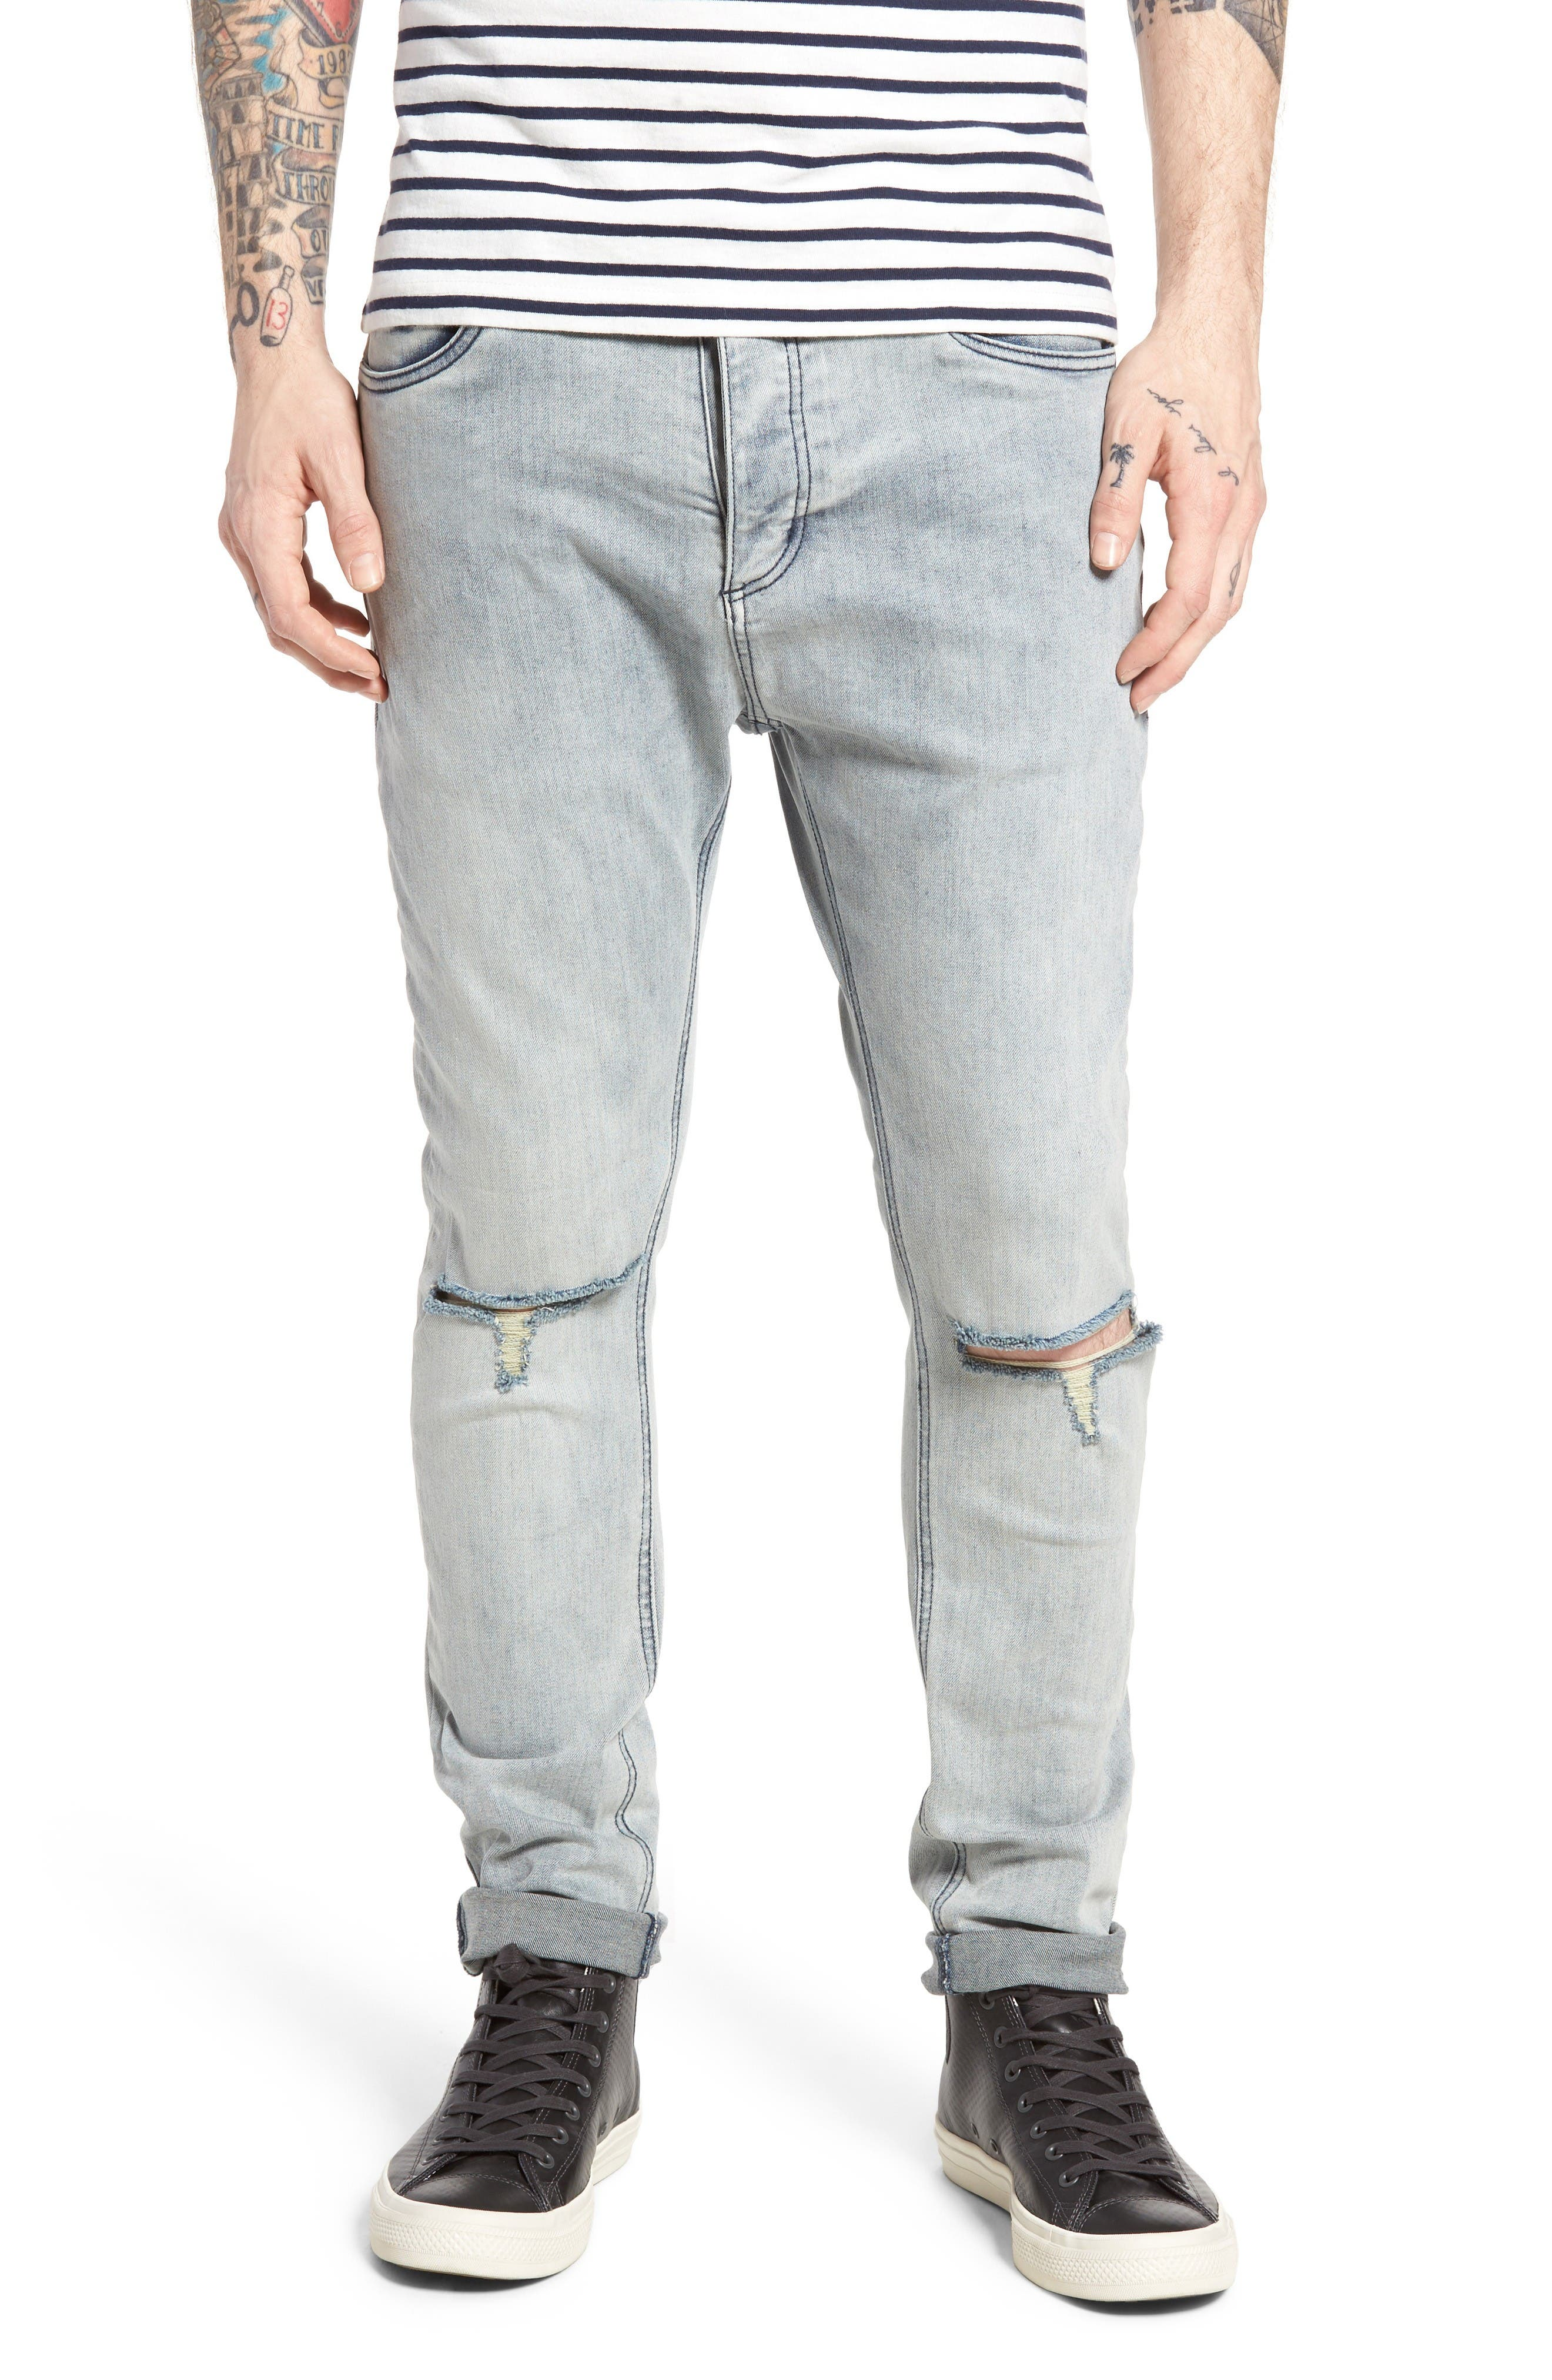 Alternate Image 1 Selected - ZANEROBE Joe Blow Destroyed Denim Jeans (Smooth Blue)